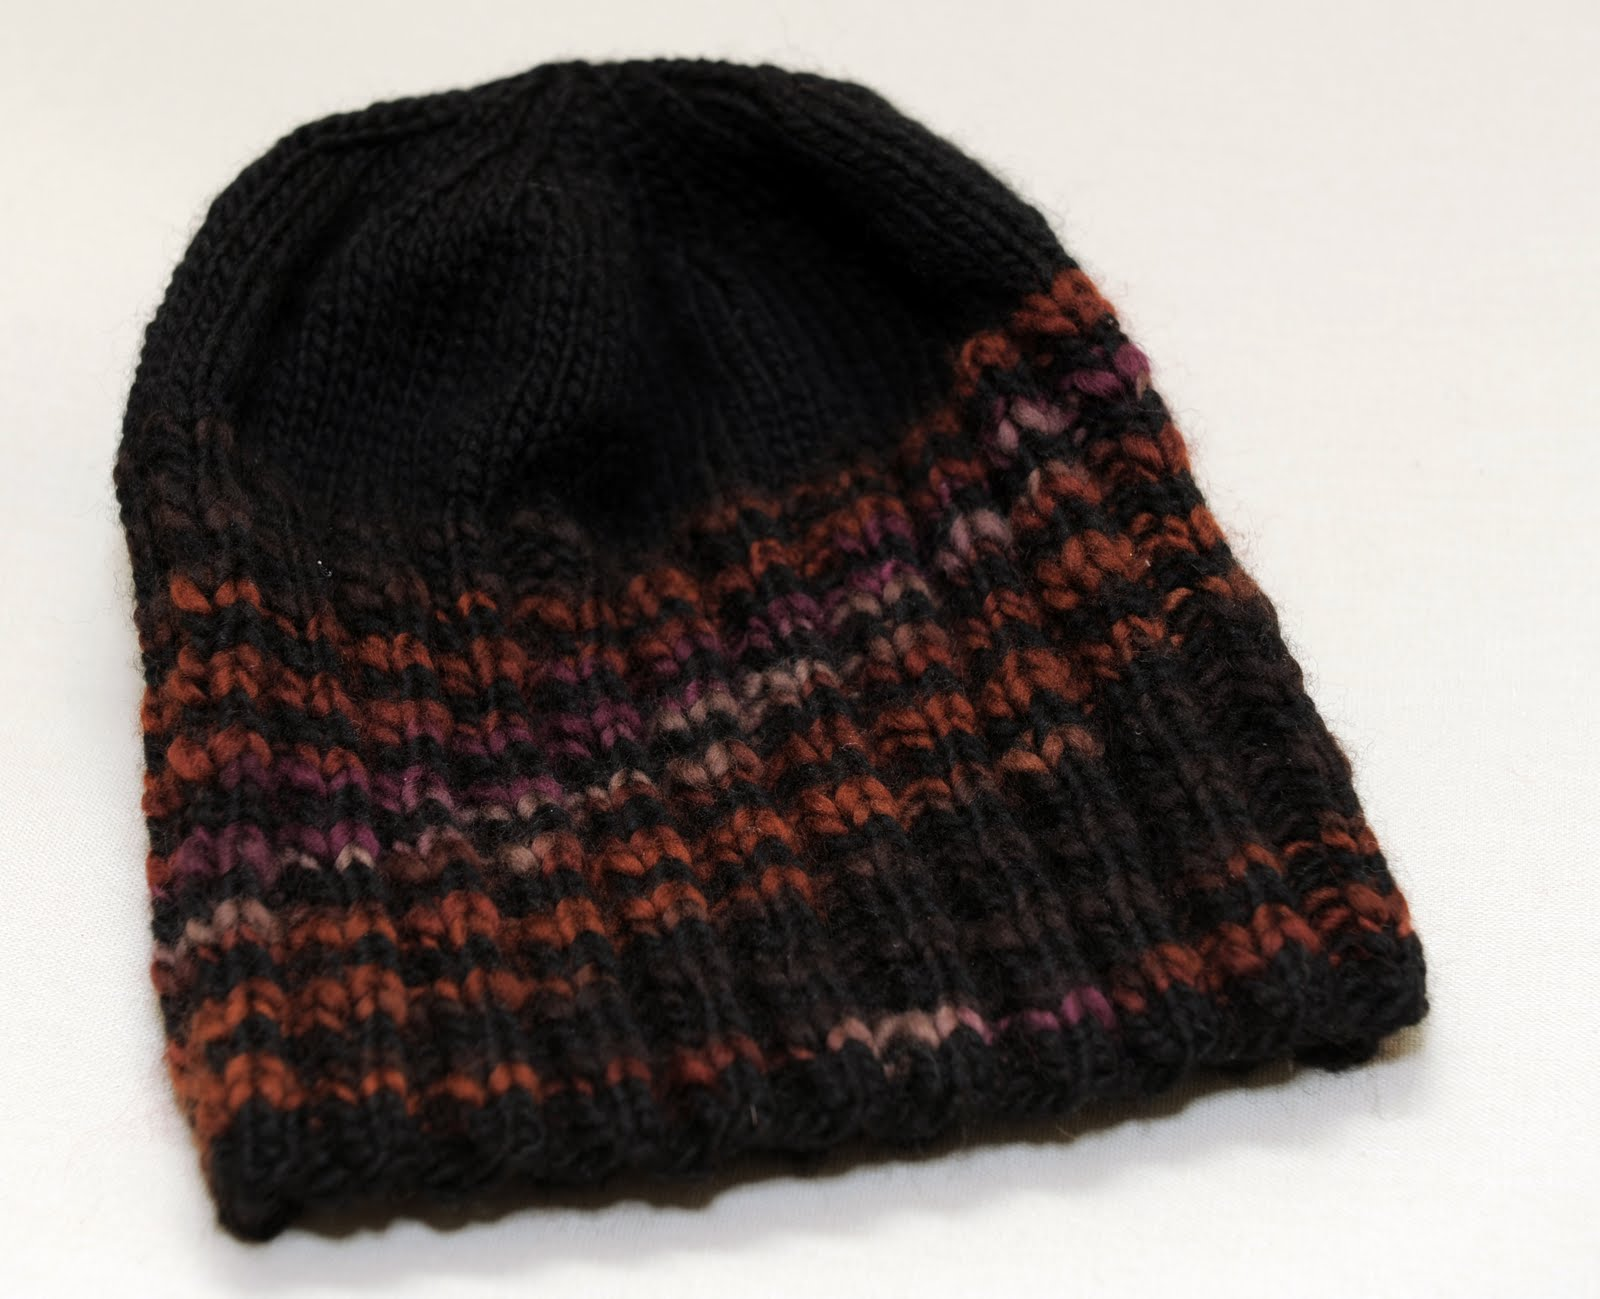 Knitting Pattern For Men s Stocking Cap : MENS KNIT HAT PATTERNS - FREE PATTERNS